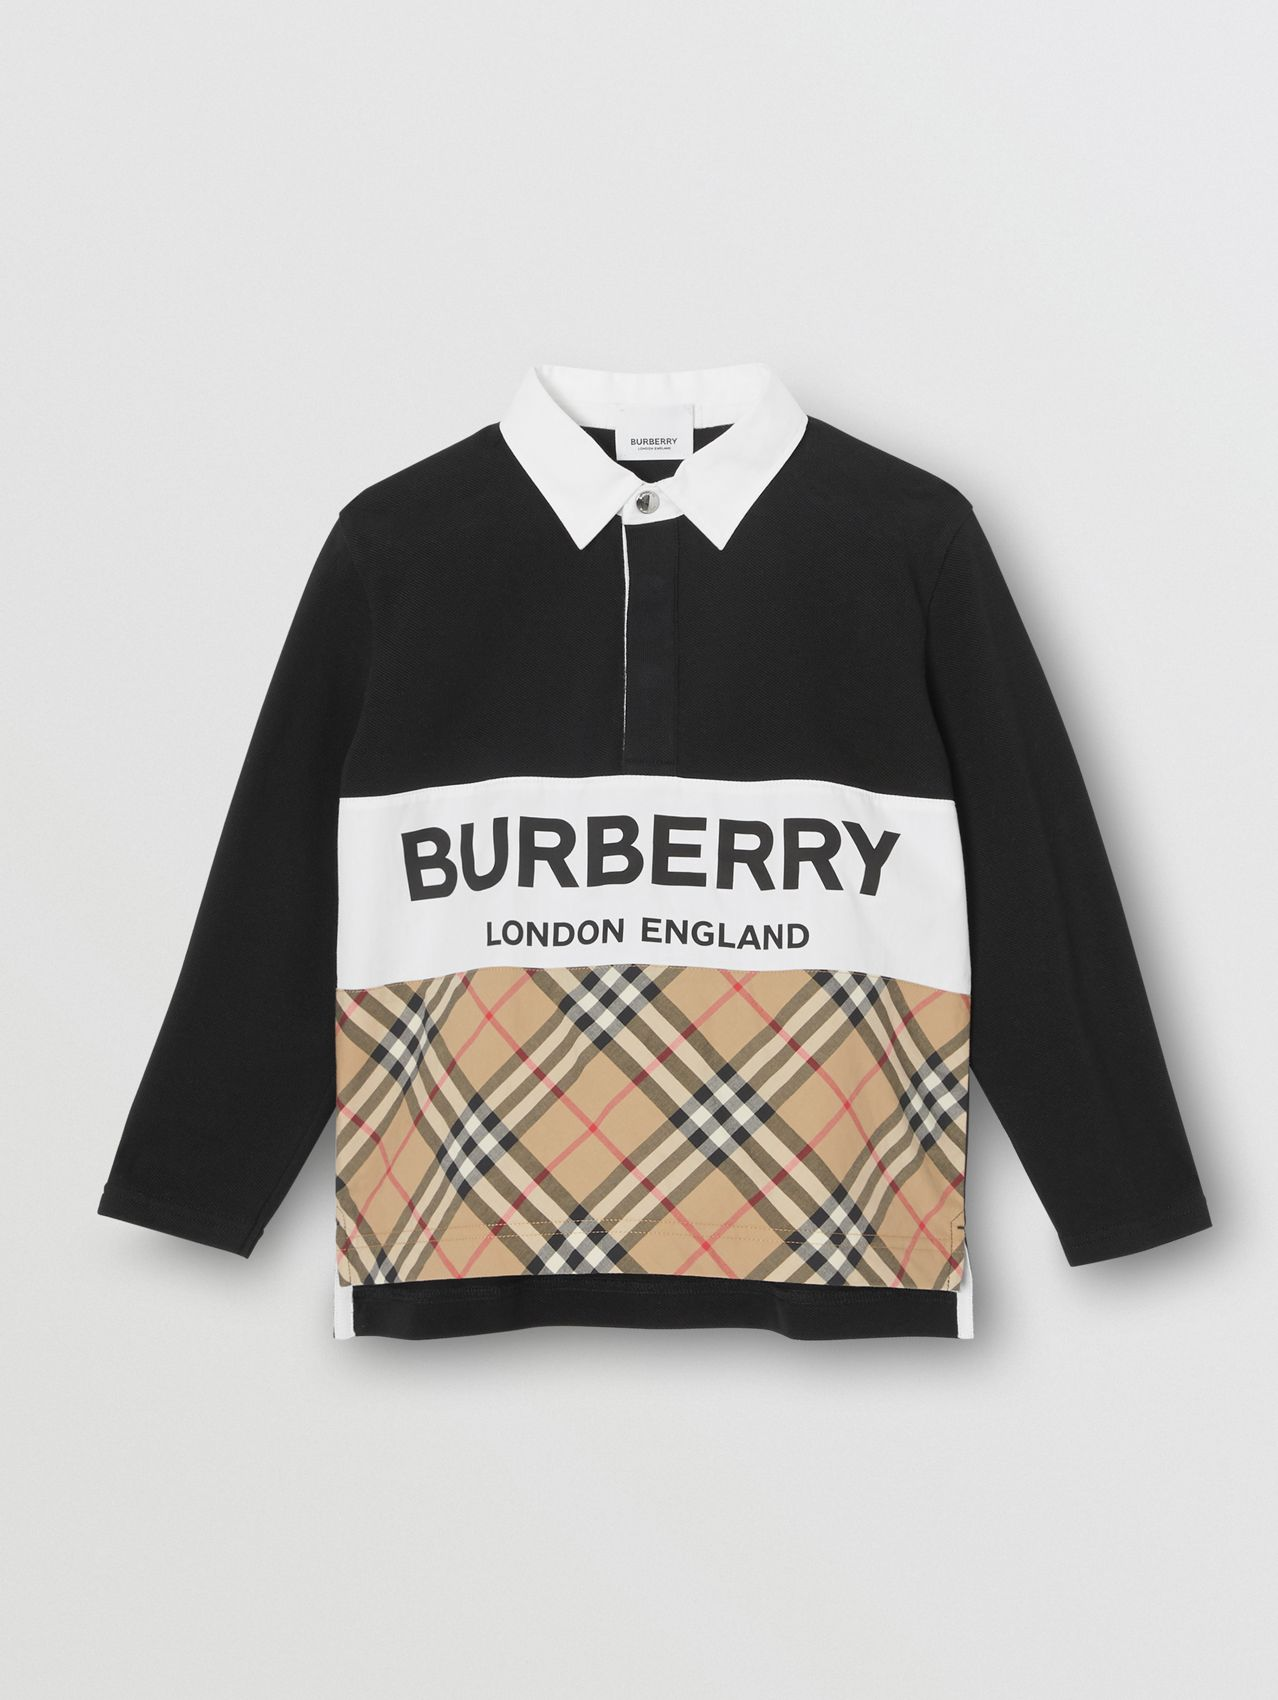 Рубашка-поло с отделкой в клетку и логотипом Burberry in Черный